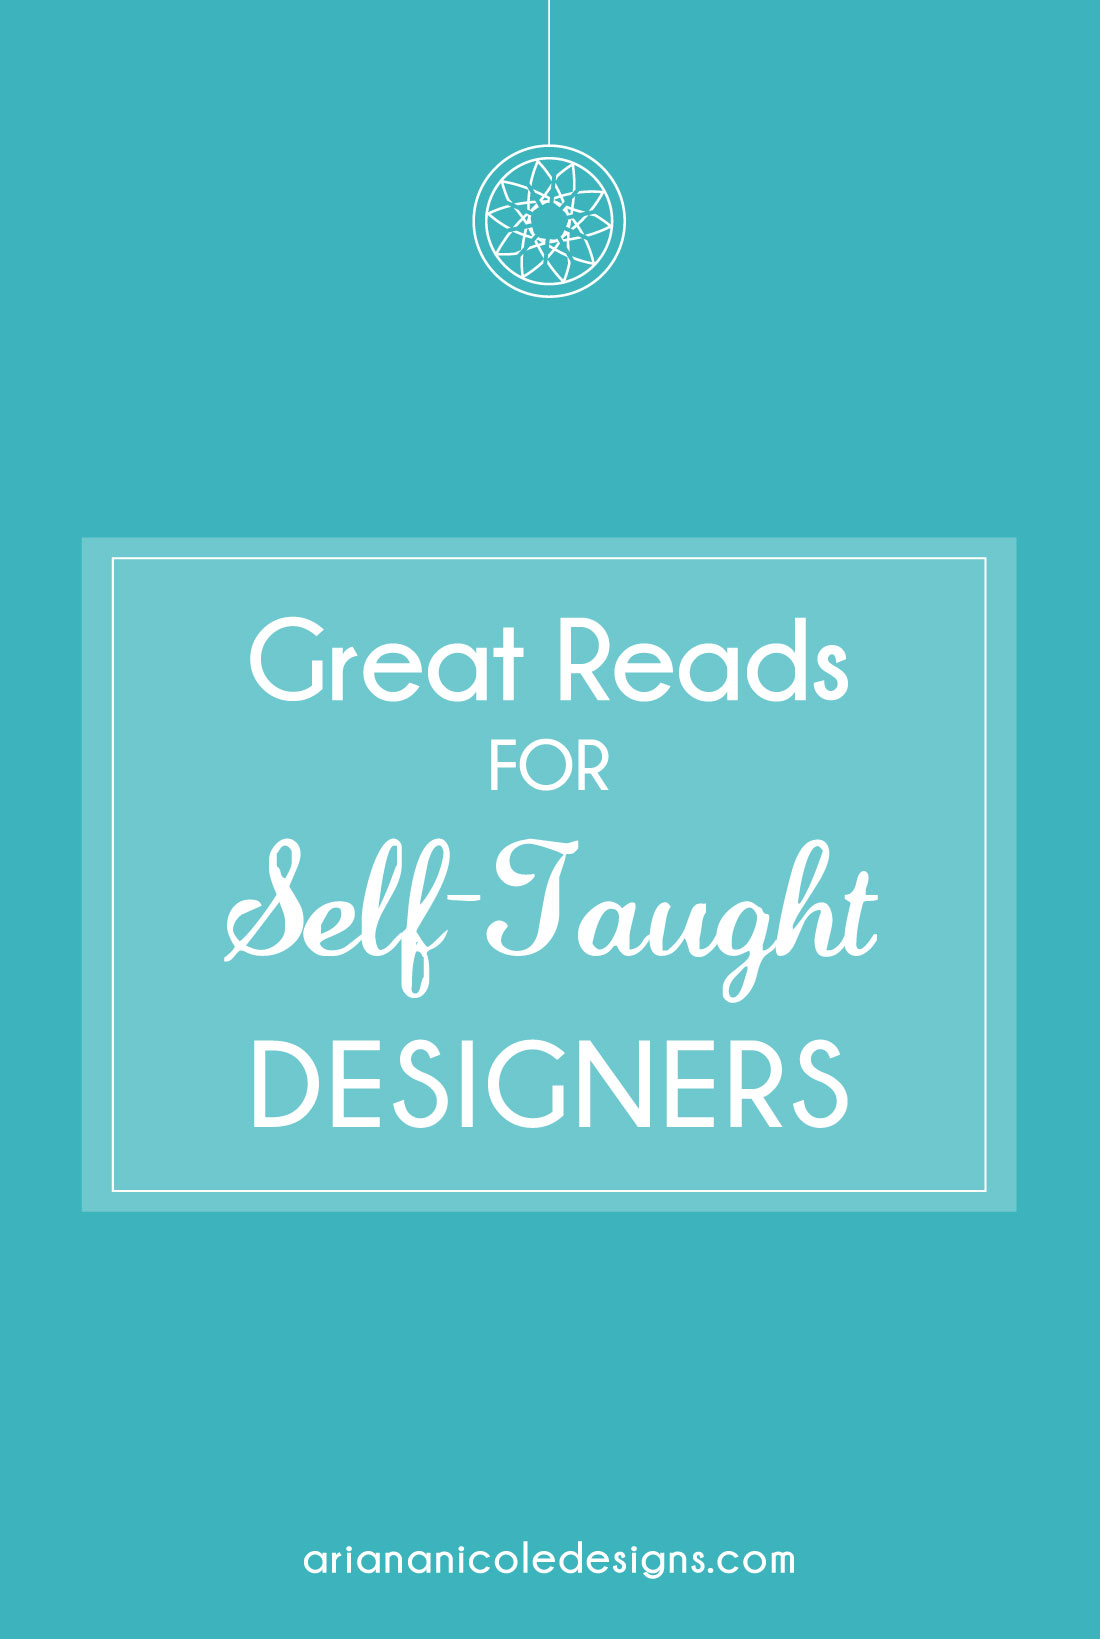 Great_Reads_For_Self-Taught_Designers-1100